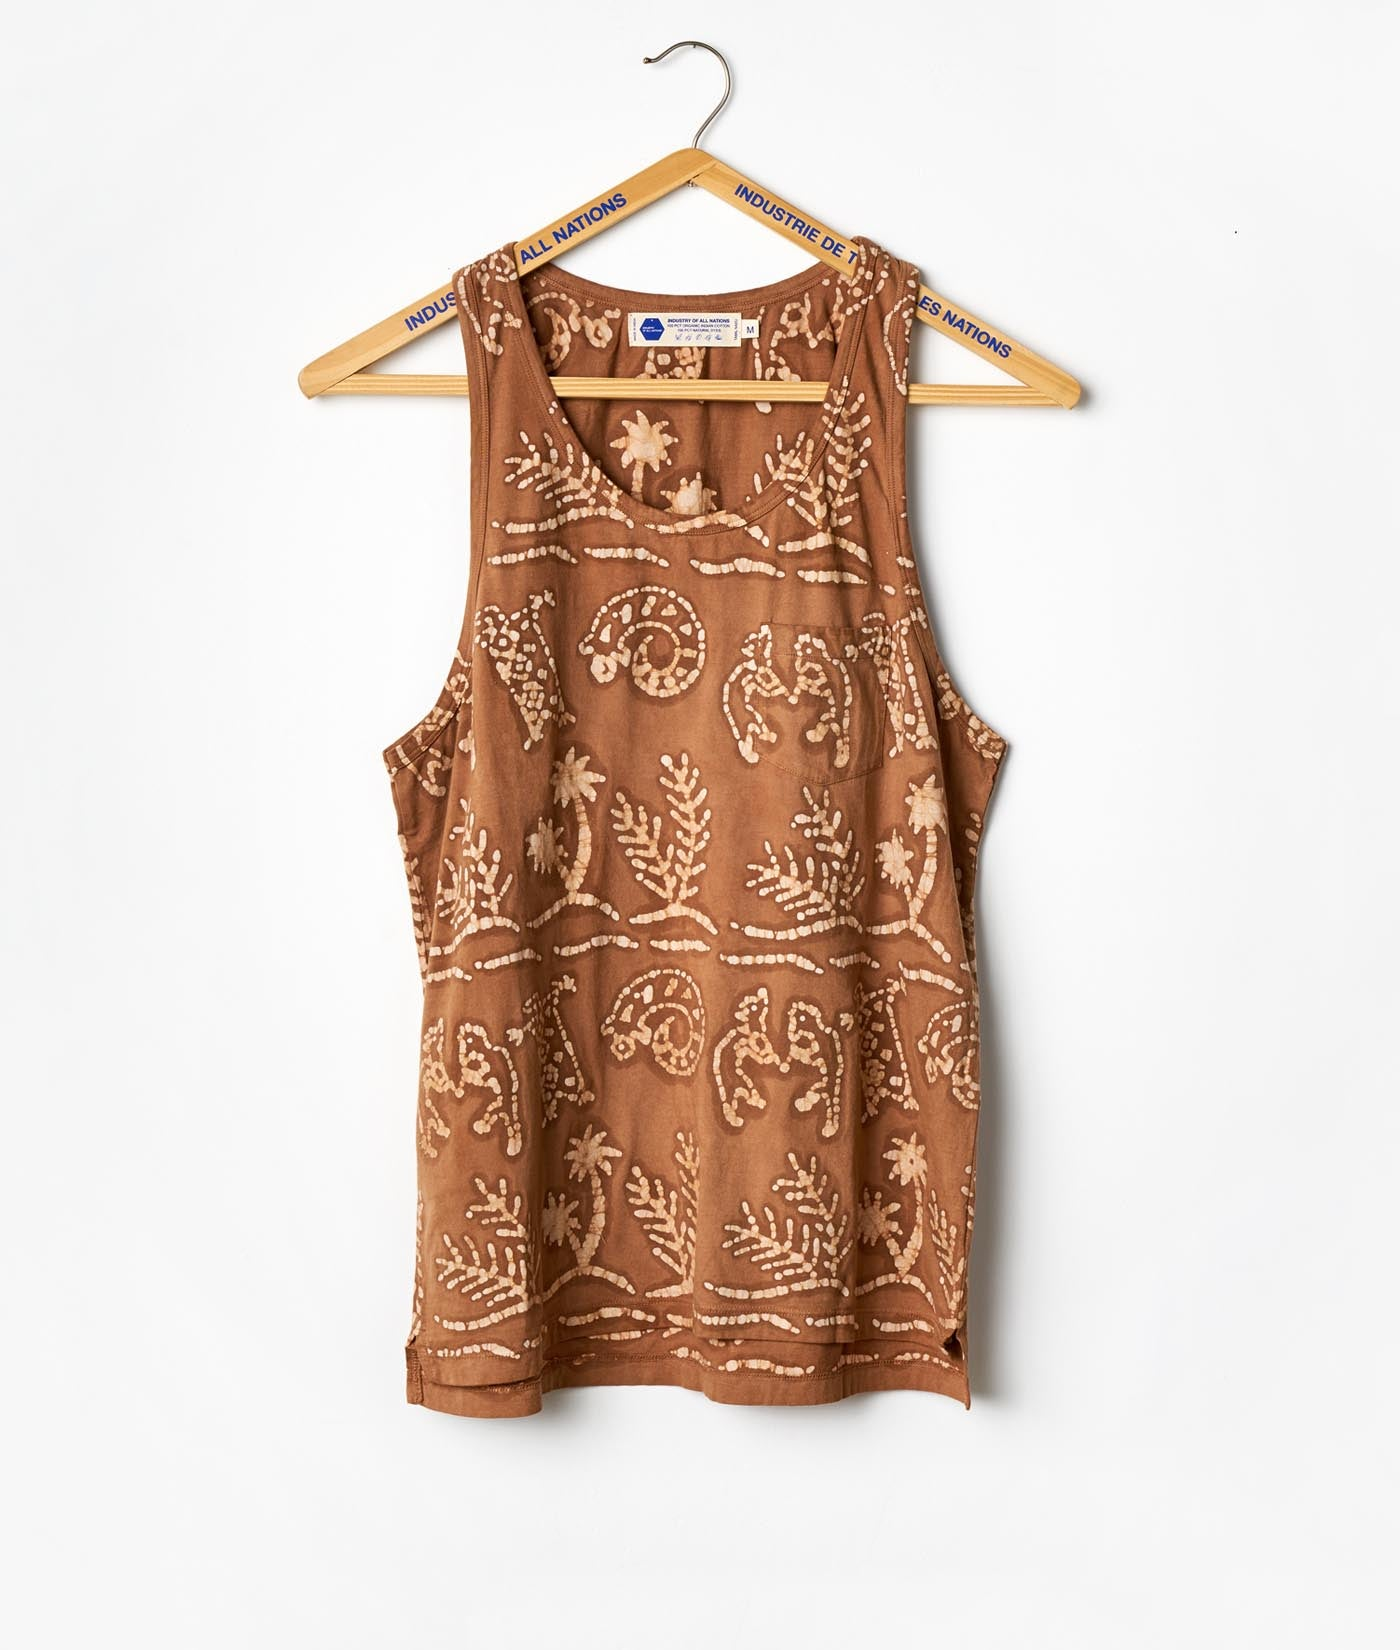 Industry of All Nations Block Printed Batik African Print Tank Top